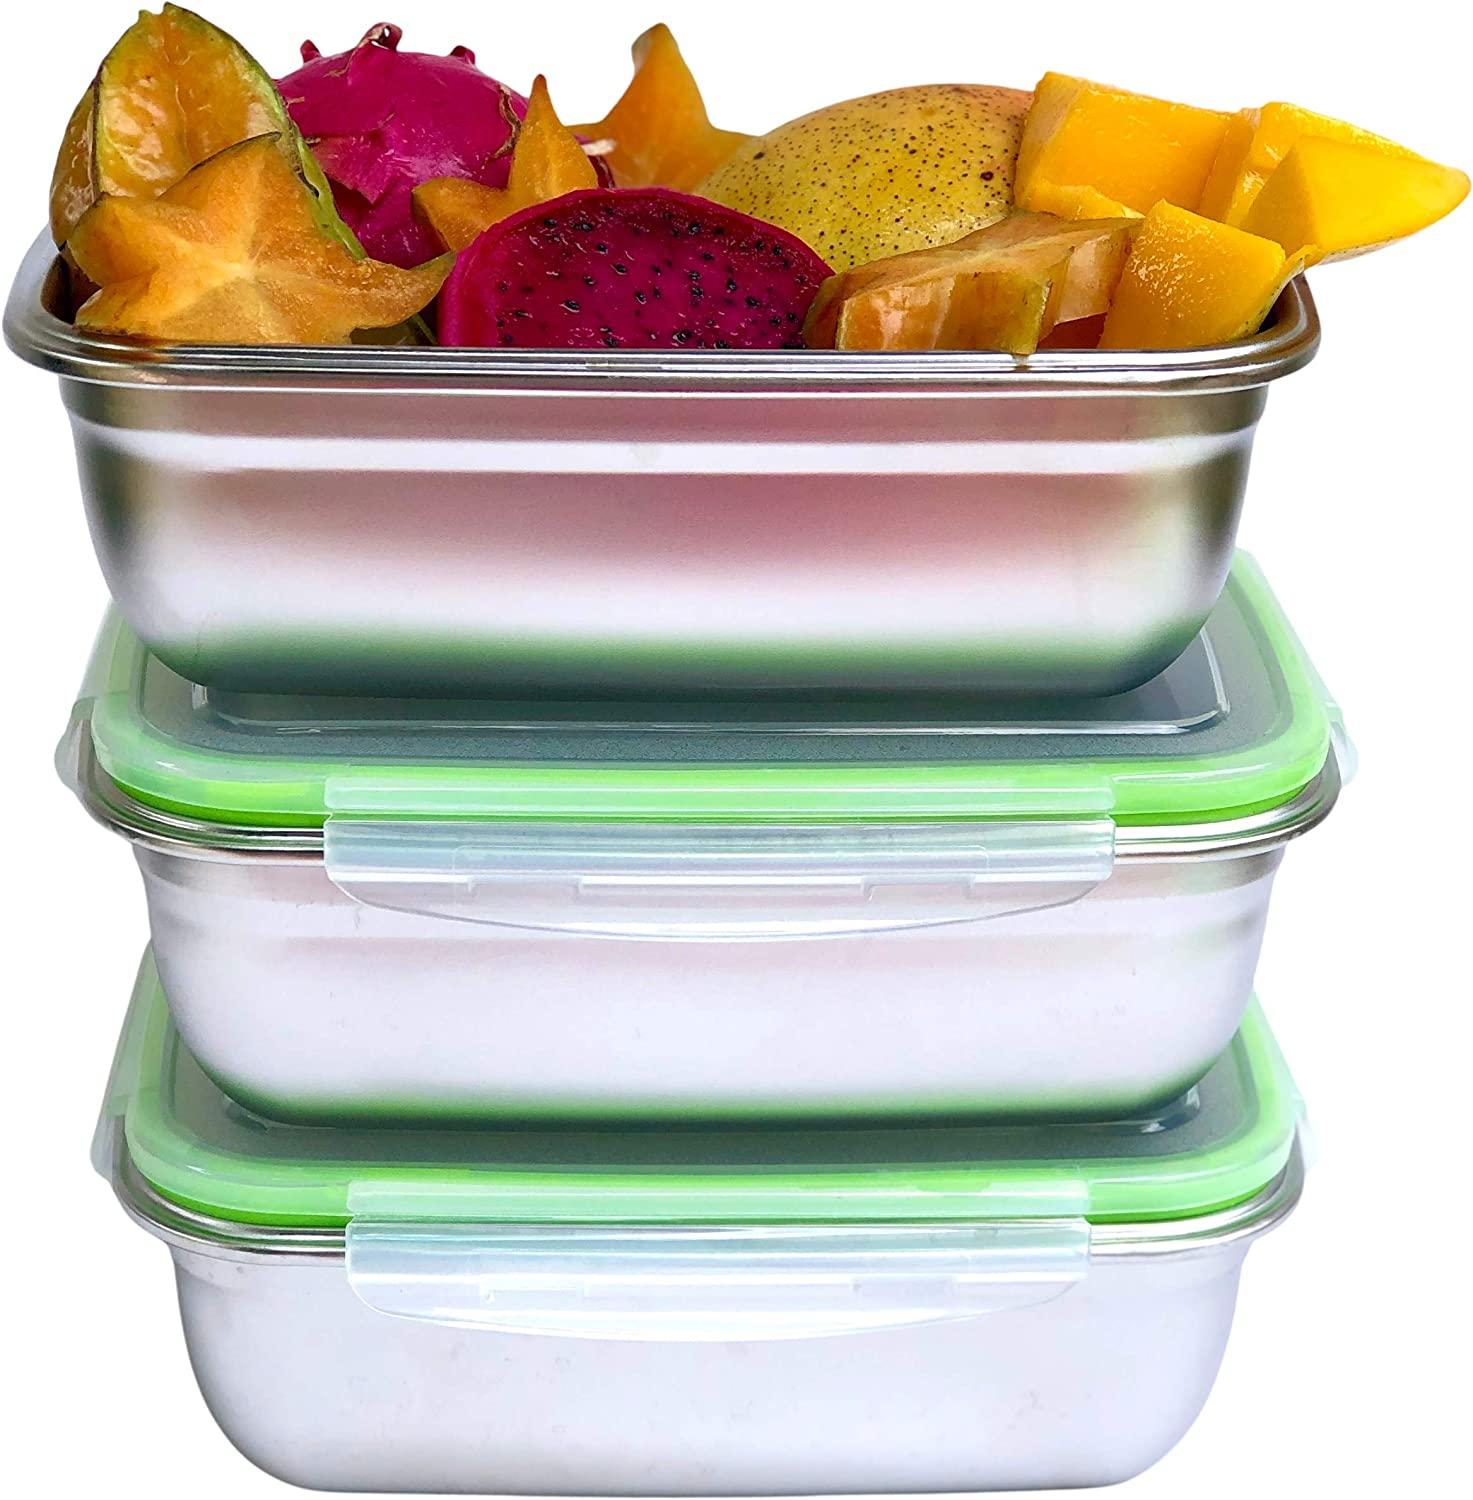 JaceBox Xlarge 3 Food Containers Set All Same Size 1800ml/ 90oz Perfect for Salads Sandwiches Pot Luck Family picnic traveling camping taking food to work take out lunch boxes Leakproof Airtight